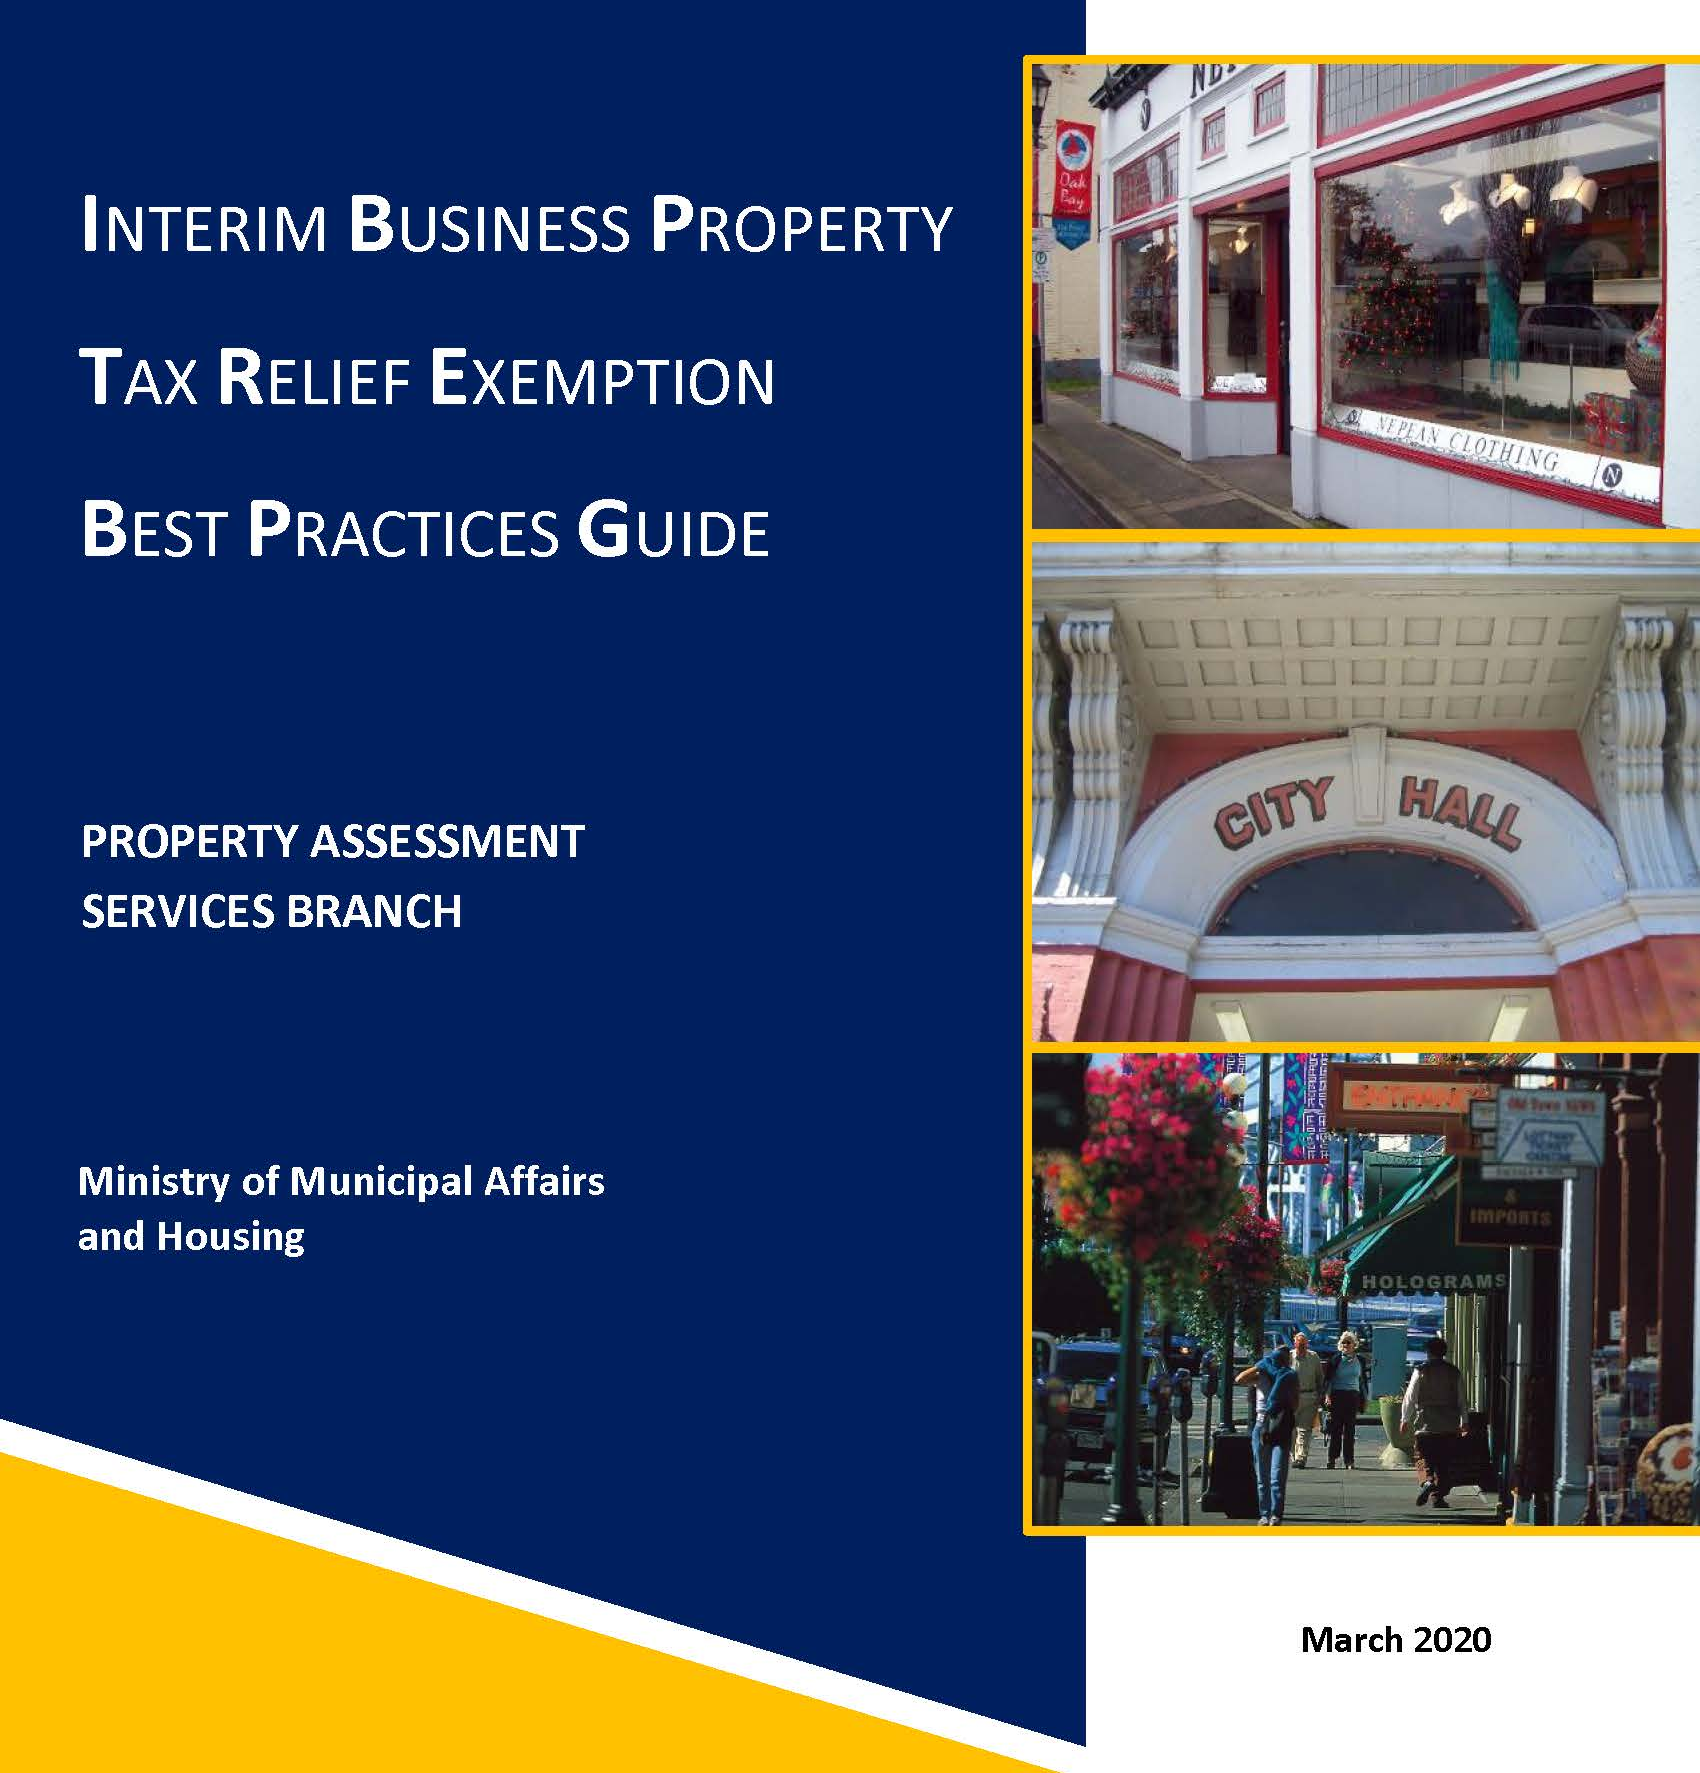 Download the Business Property Tax Relief Exemption Best Practices Guide (PDF, 1.3MB)